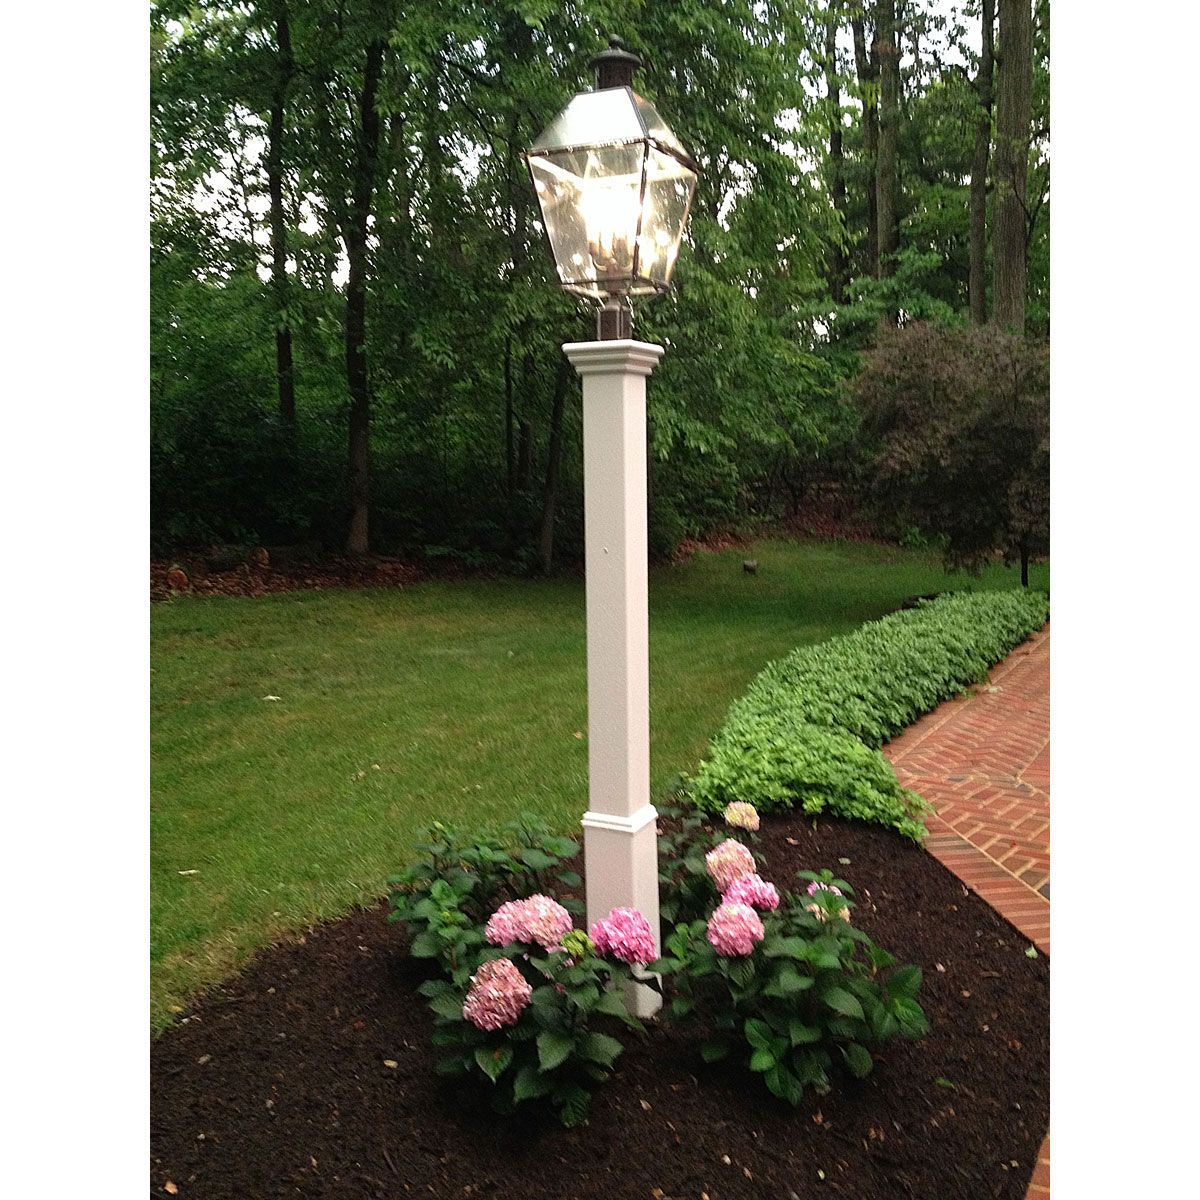 6 W X 72 H Madison Lamp Post Lamp Not Included White 99 99 Garden Lamp Post Outdoor Lamp Posts Light Post Landscaping